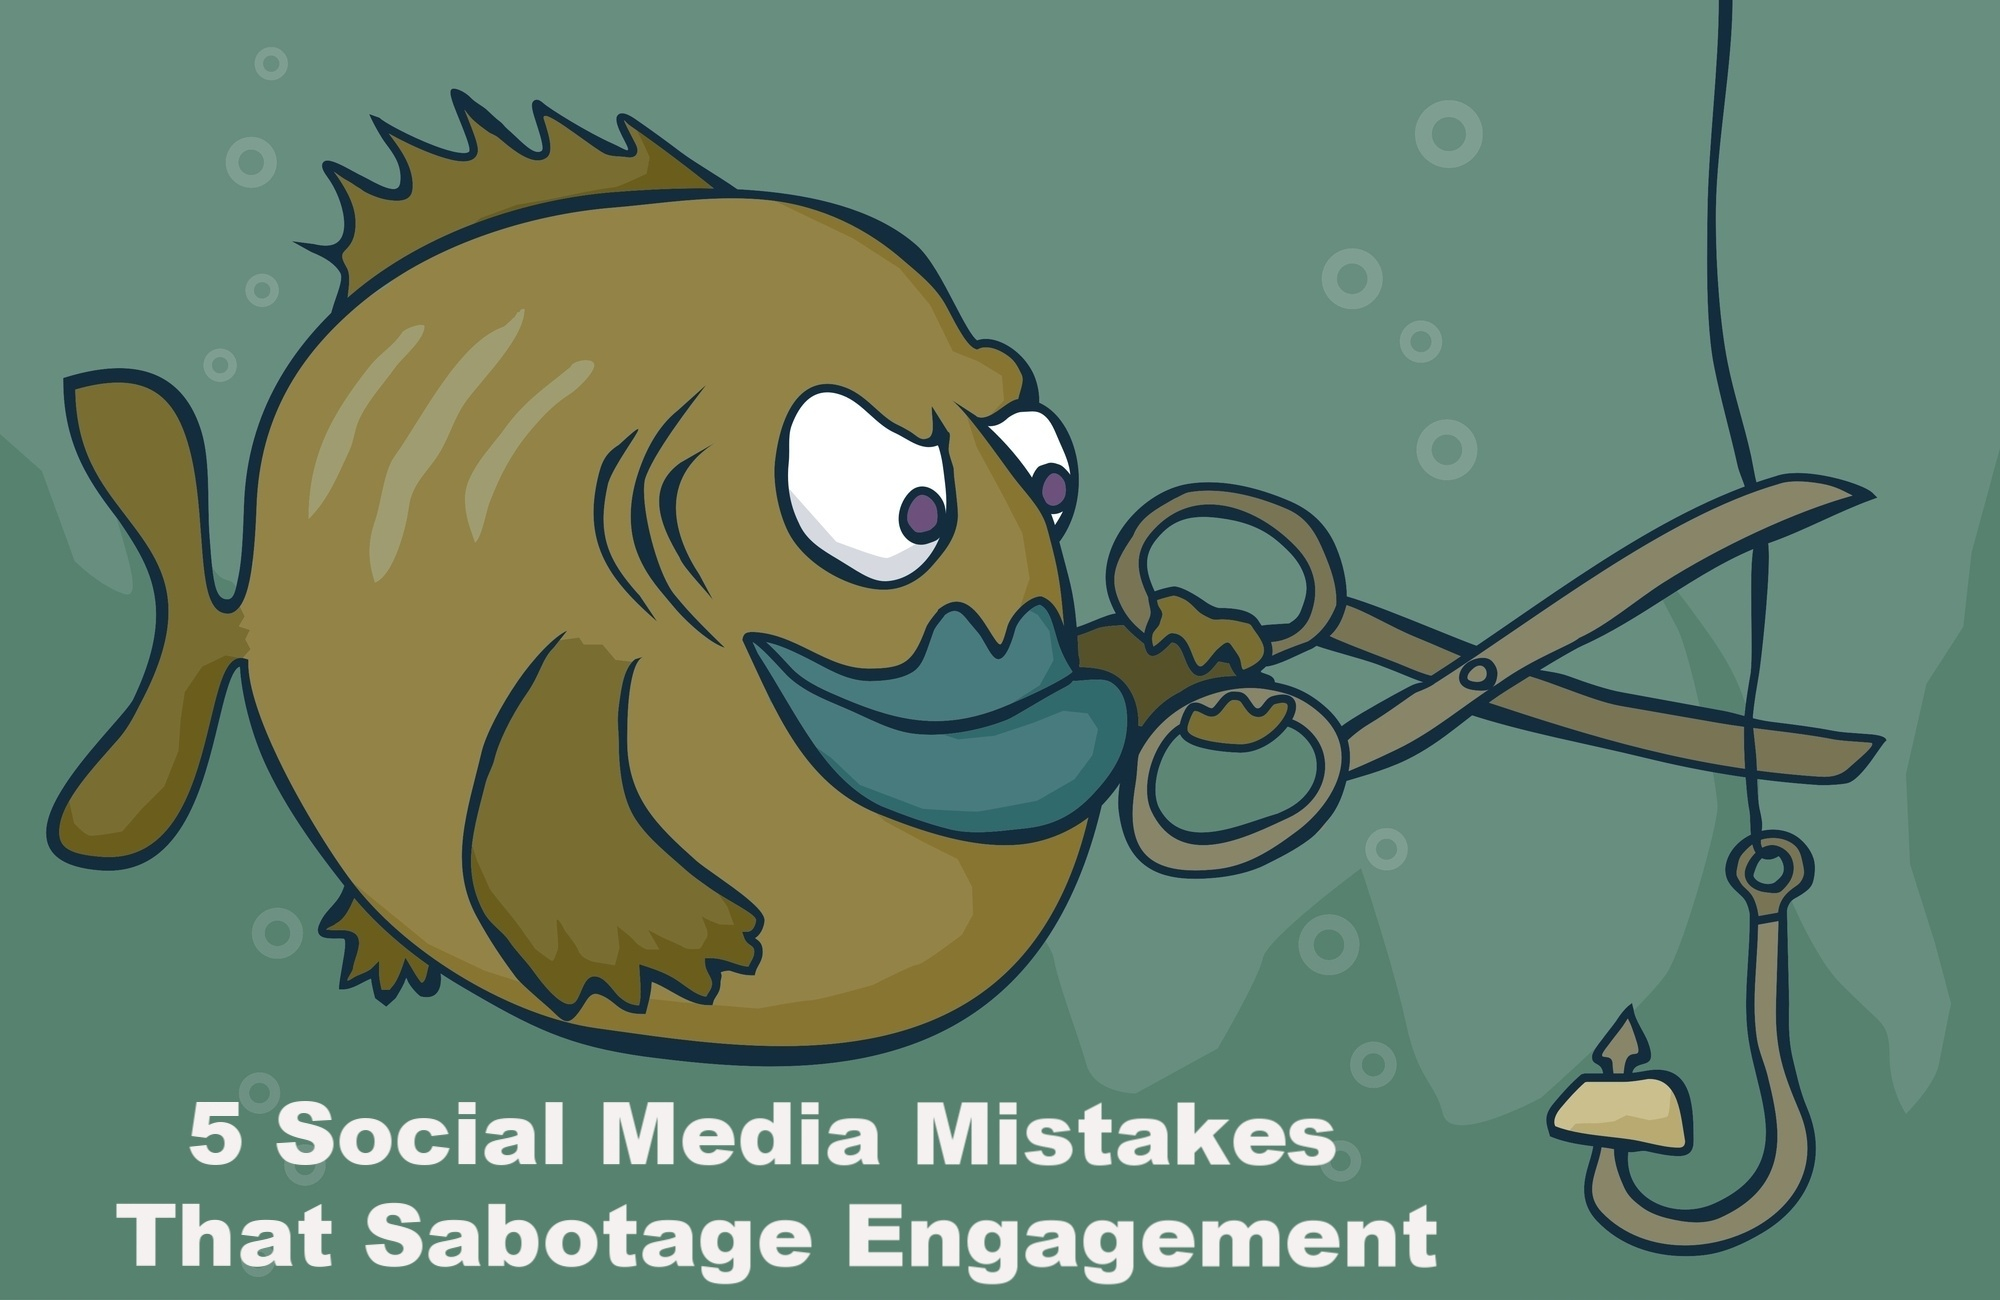 Social Media Mistakes that Hurt Engagement